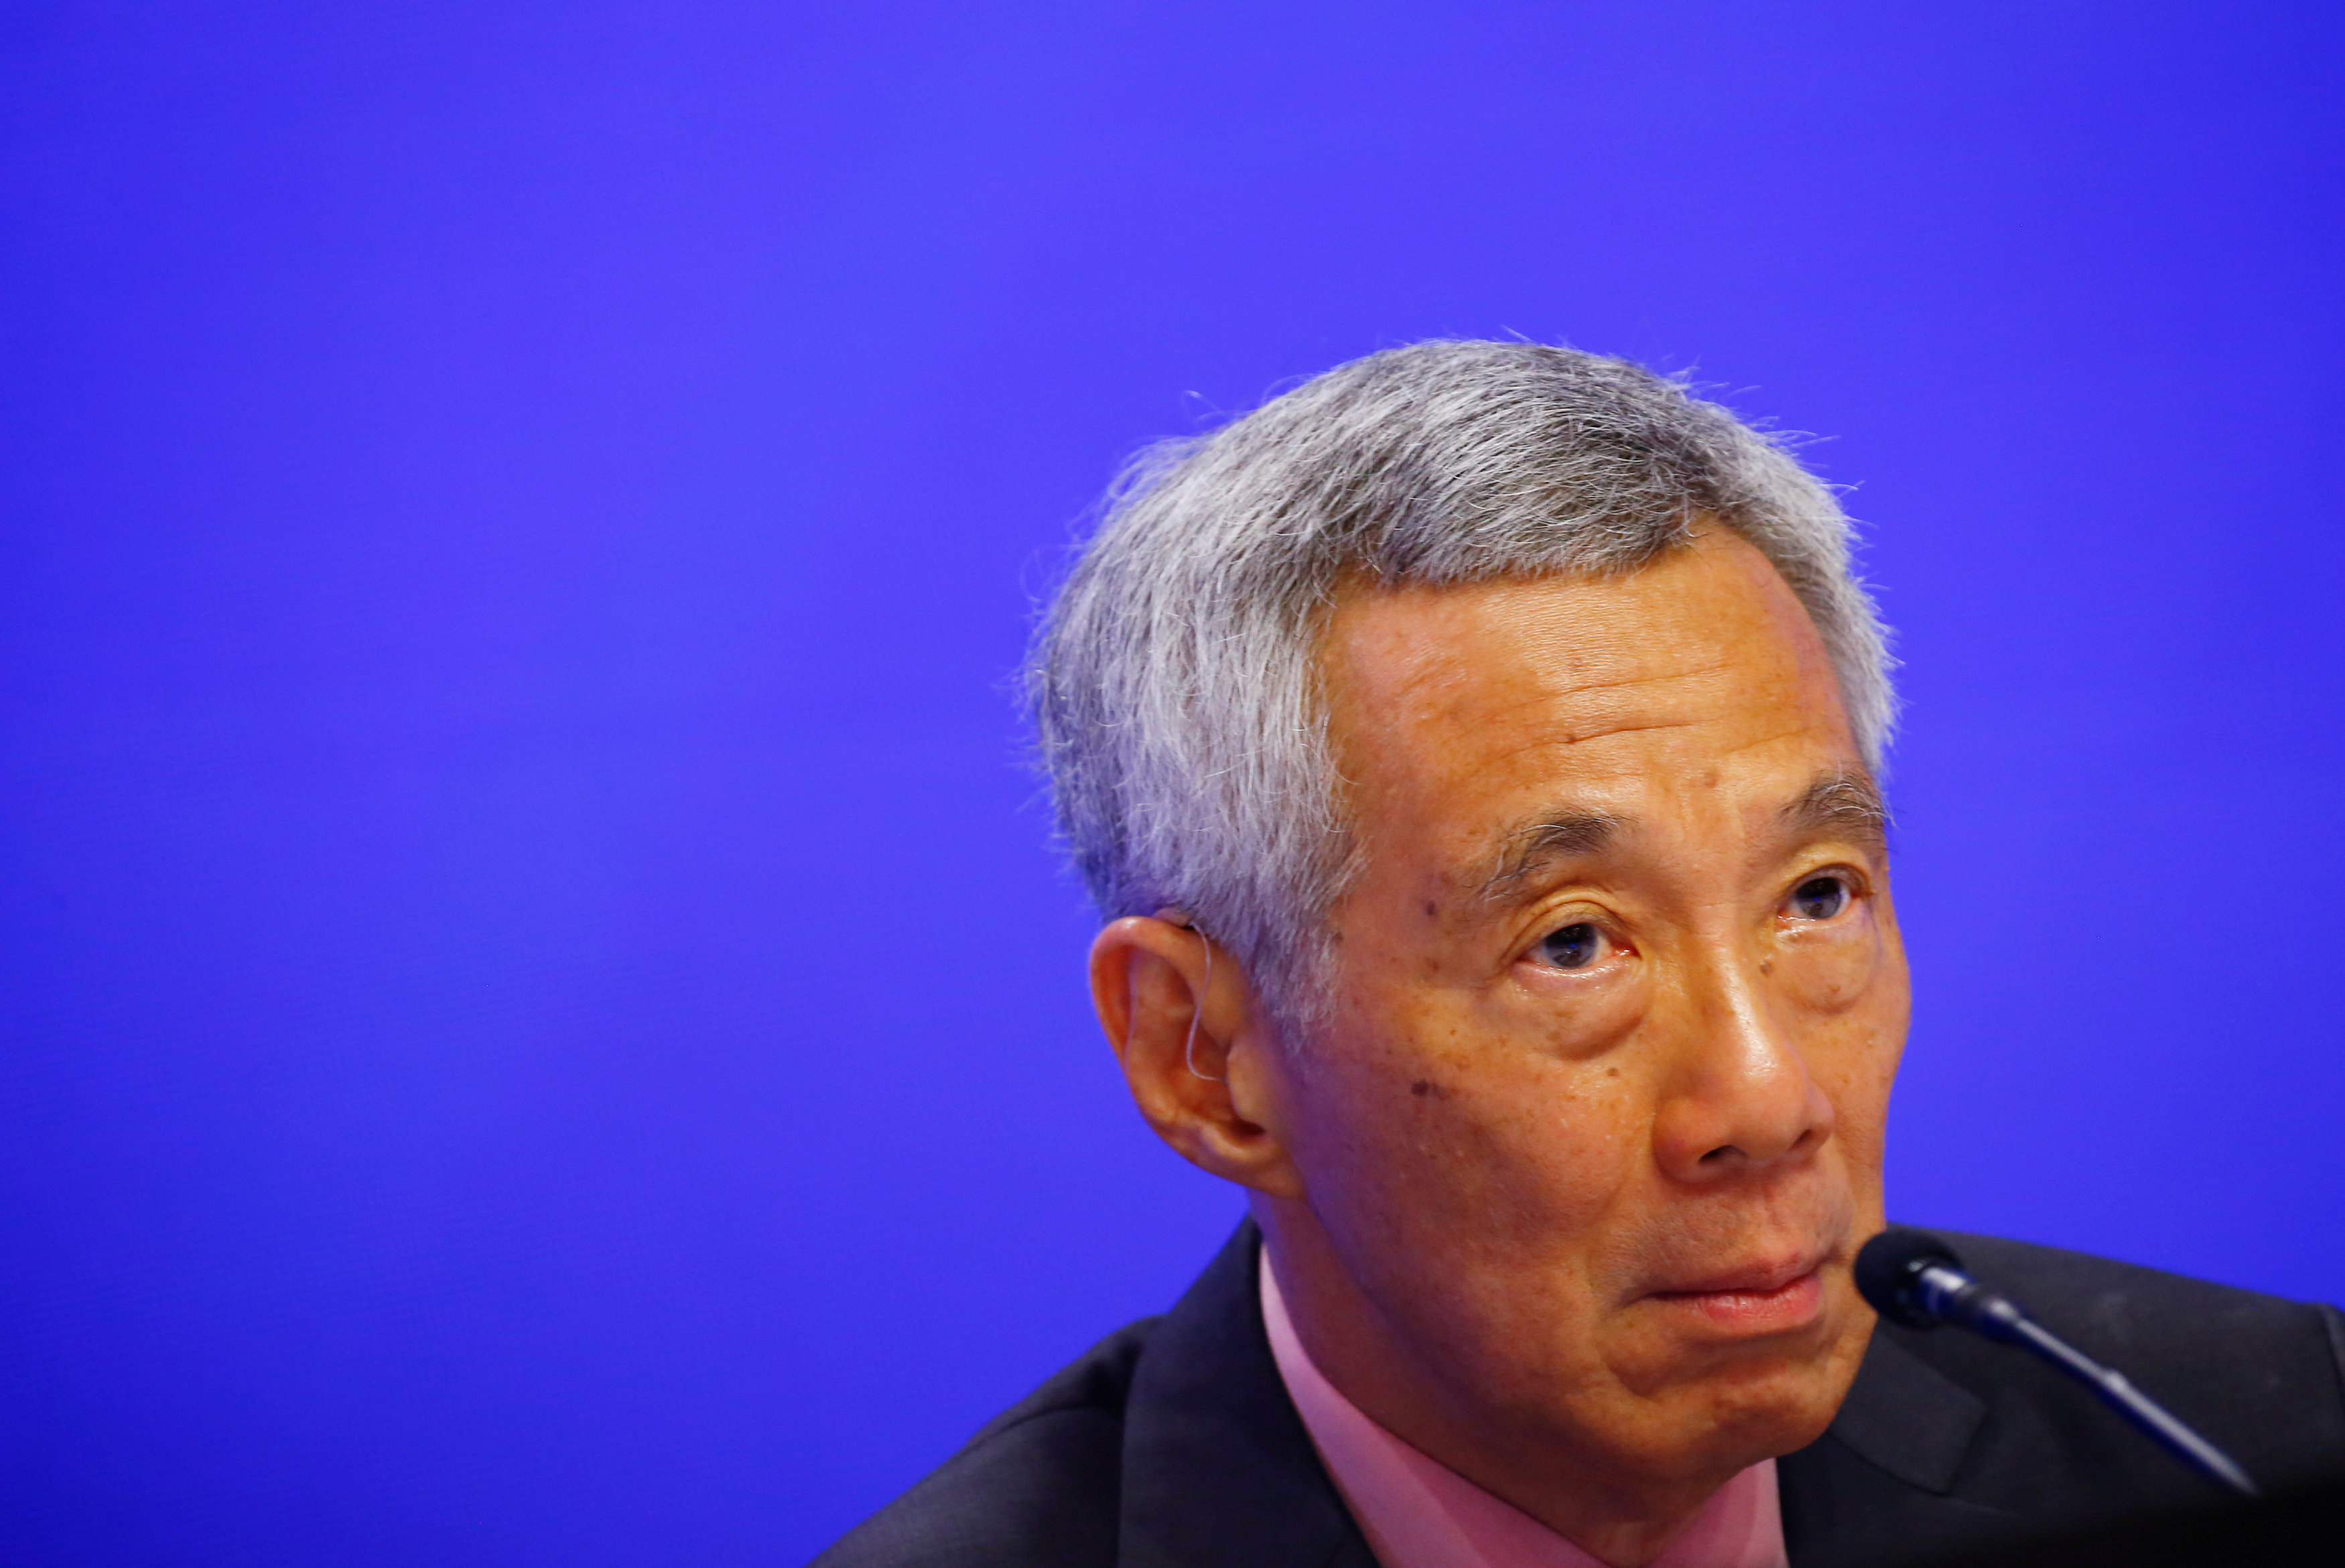 Singaporean Prime Minister Lee Hsien Loong is pictured at the 18th Shangri-la Dialogue in Singapore on May 31, 2019. Photo: Reuters